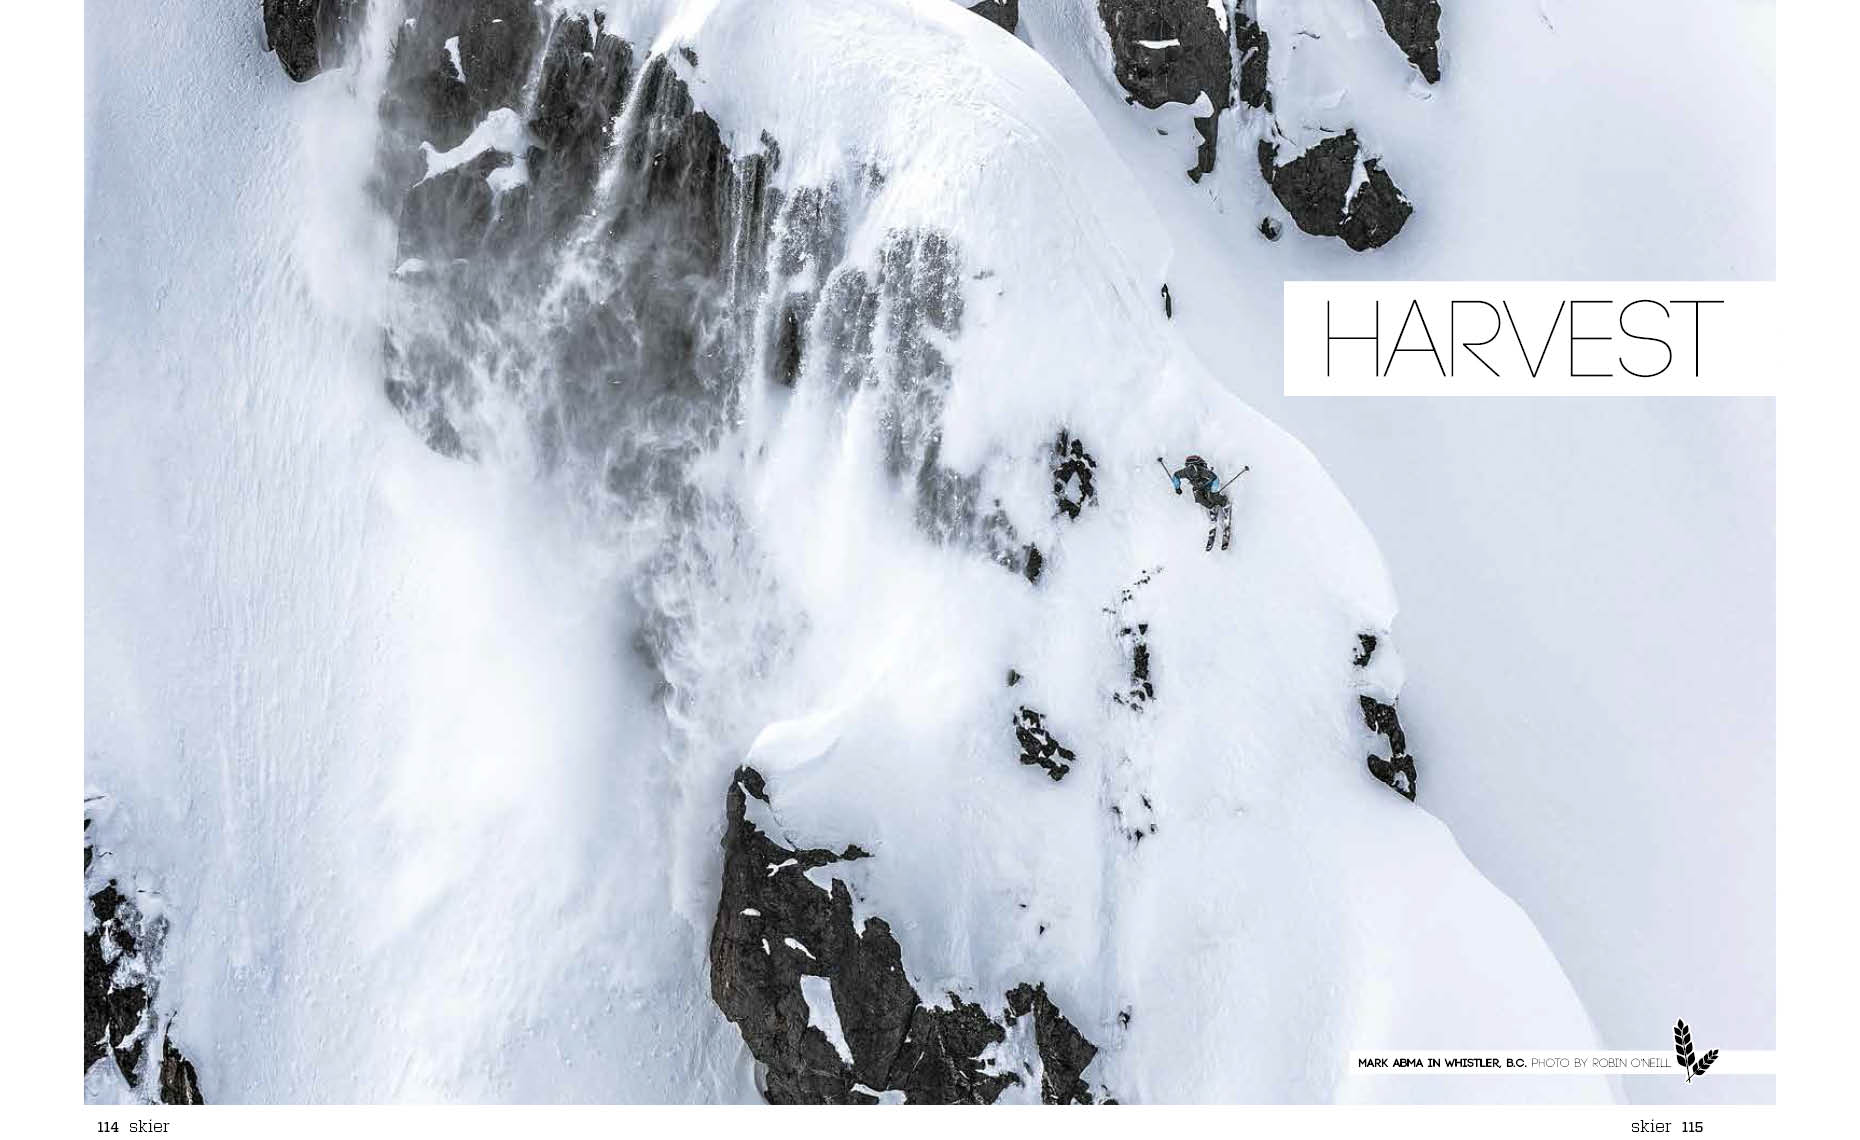 Double page spread by ski action photographer